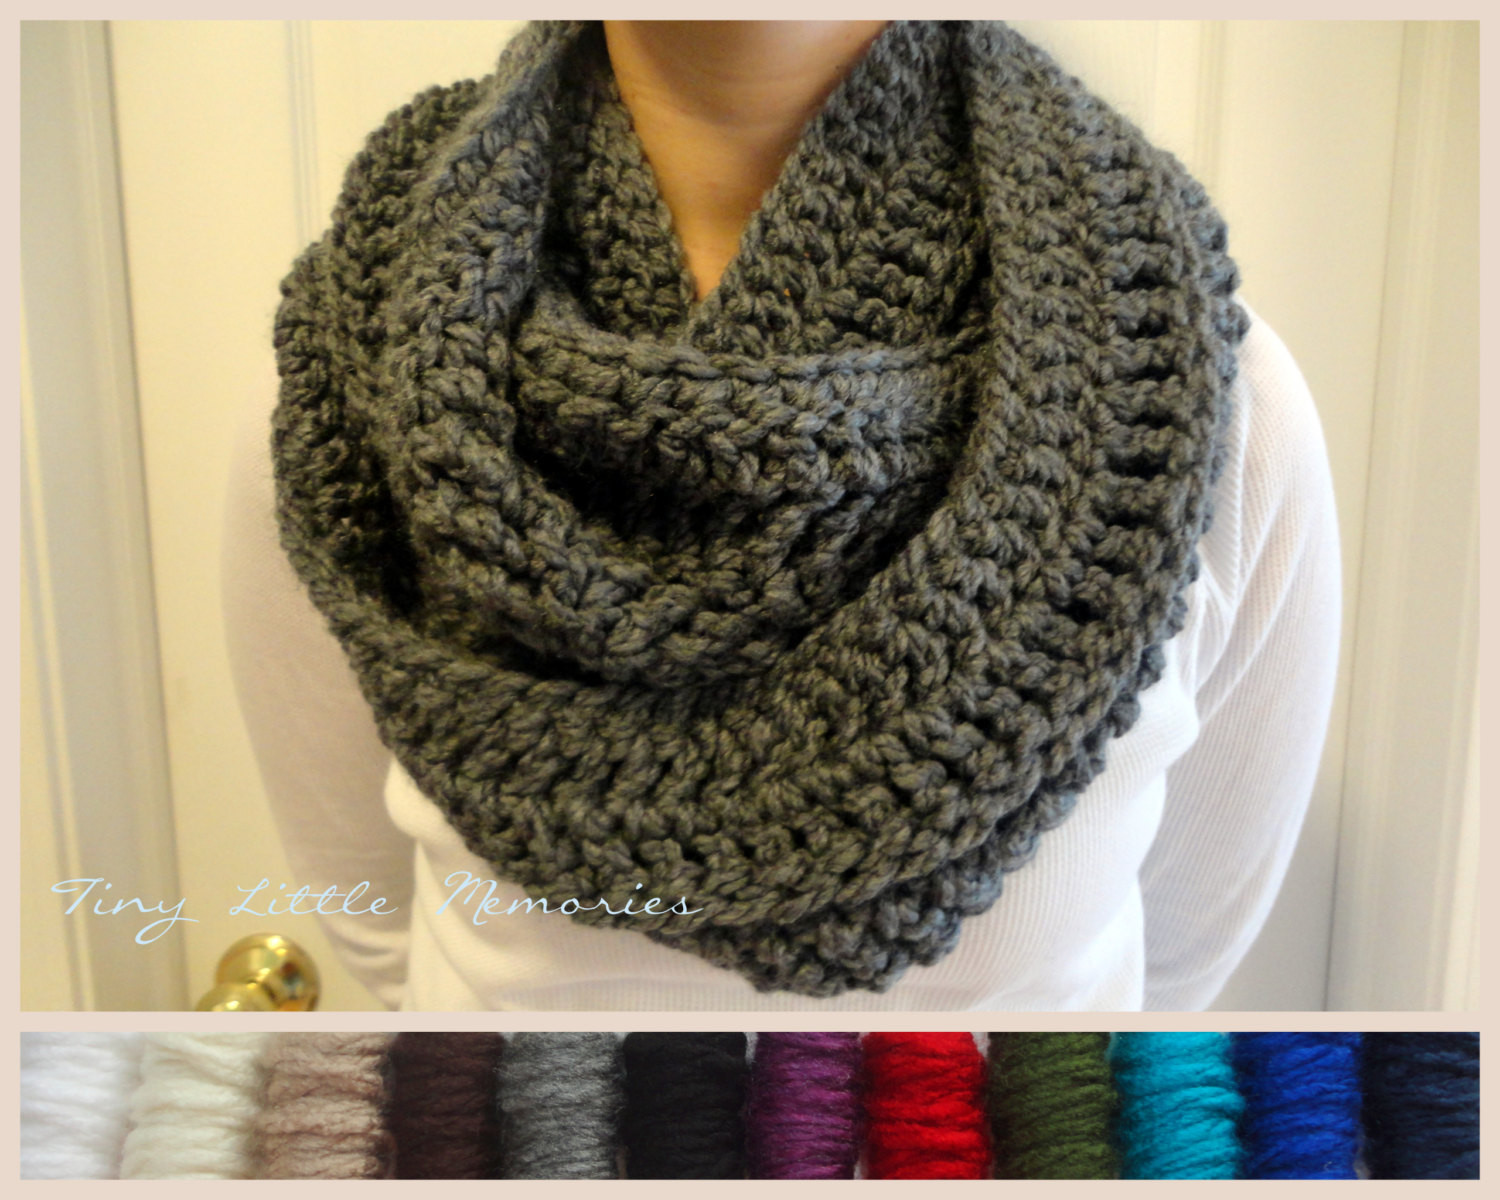 Crochet Infinity Scarves New My Crochet Part 321 Of New 44 Photos Crochet Infinity Scarves